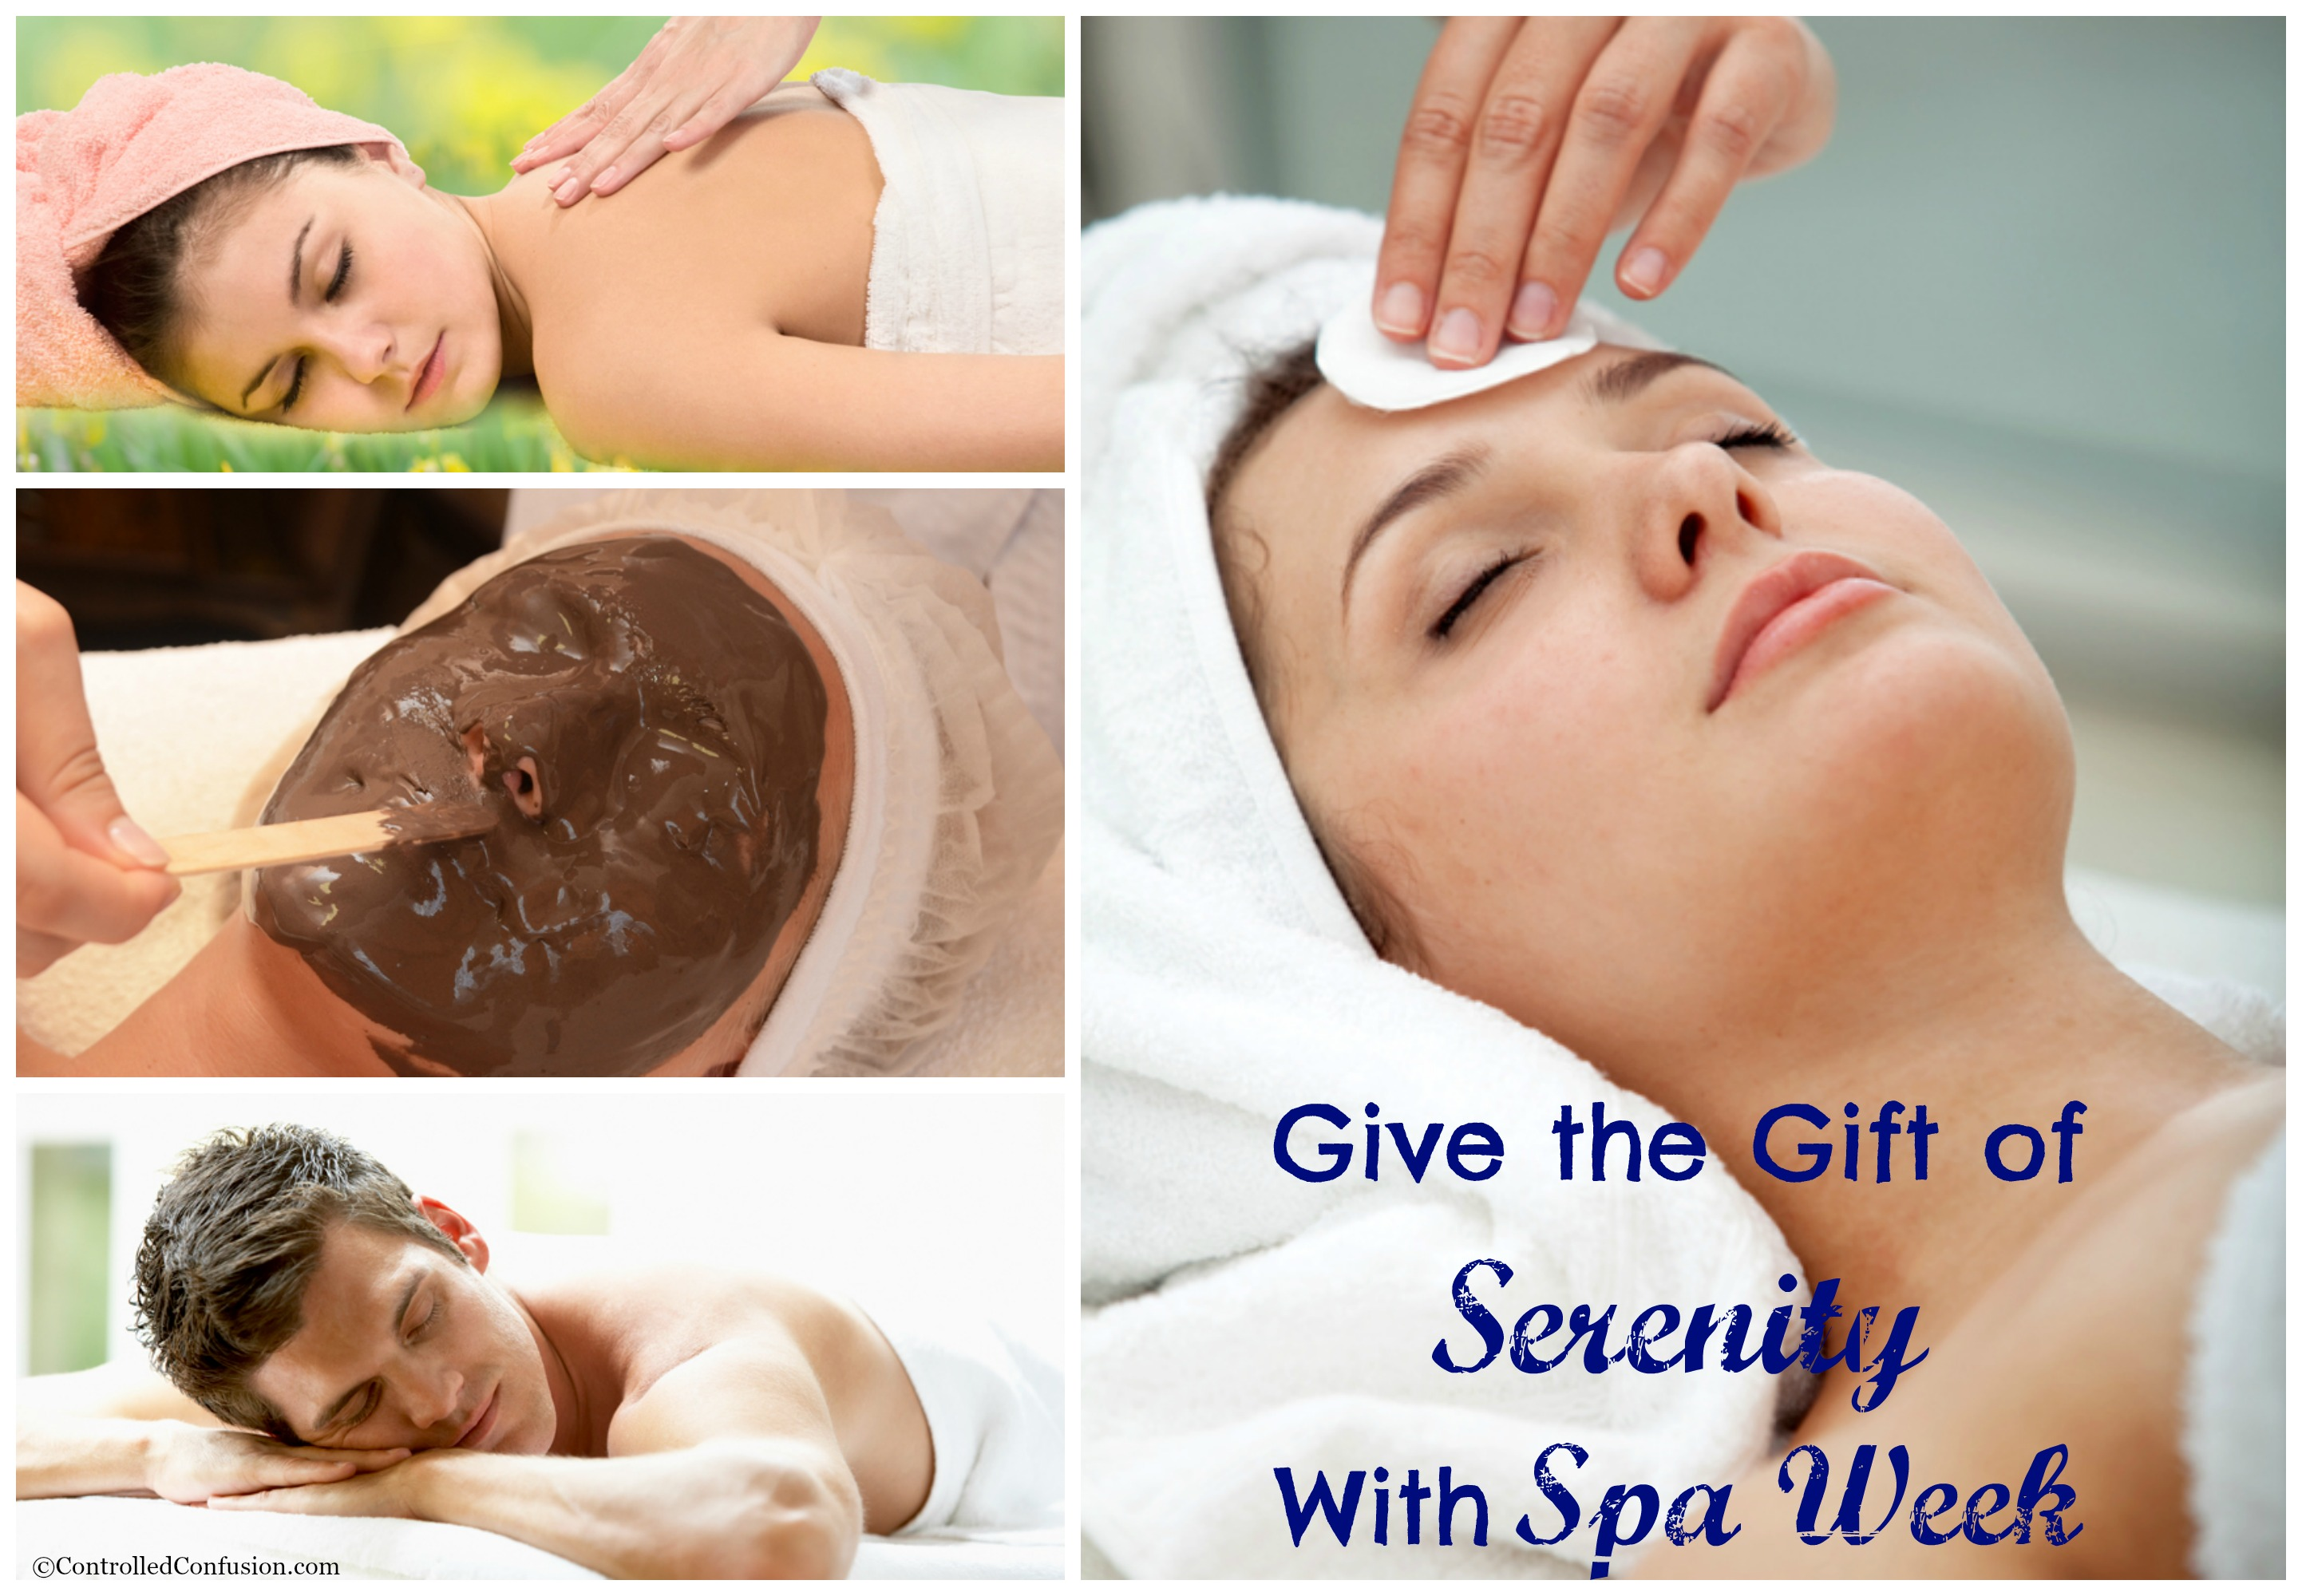 Give the Gift of Serenity With Spa Week